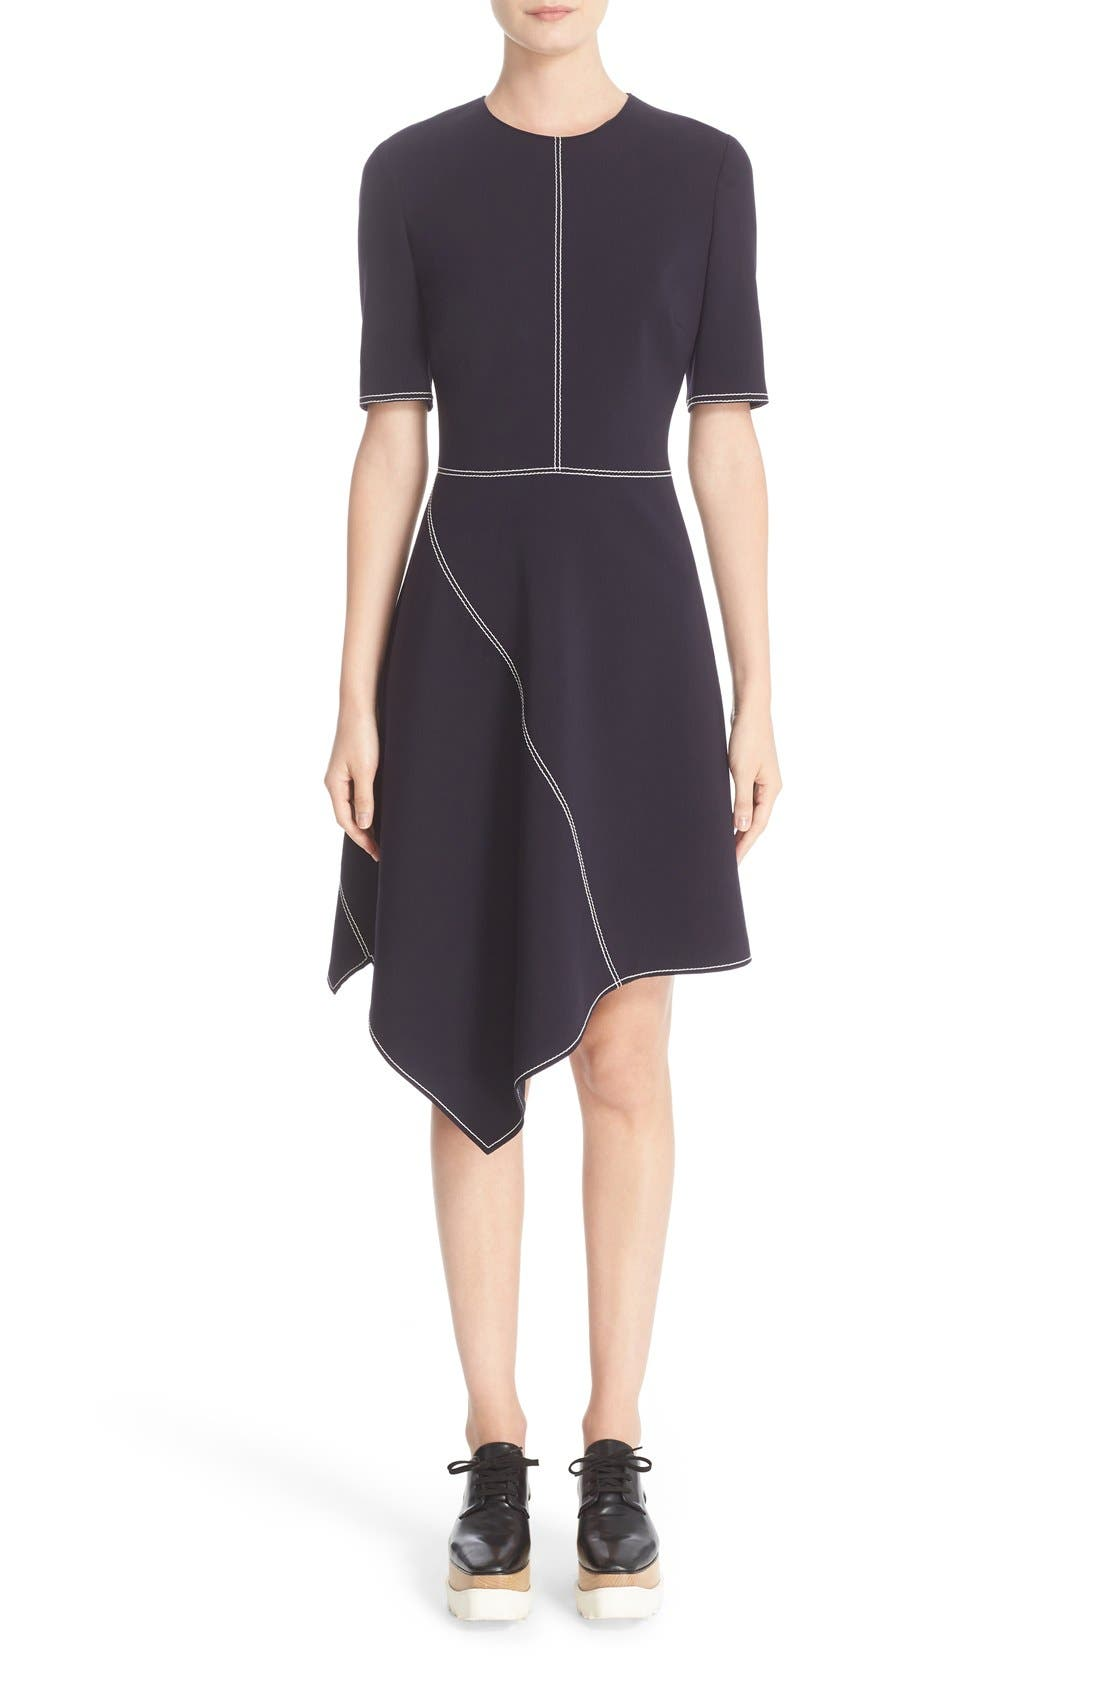 Stella McCartney Topstitch Asymmetrical Dress